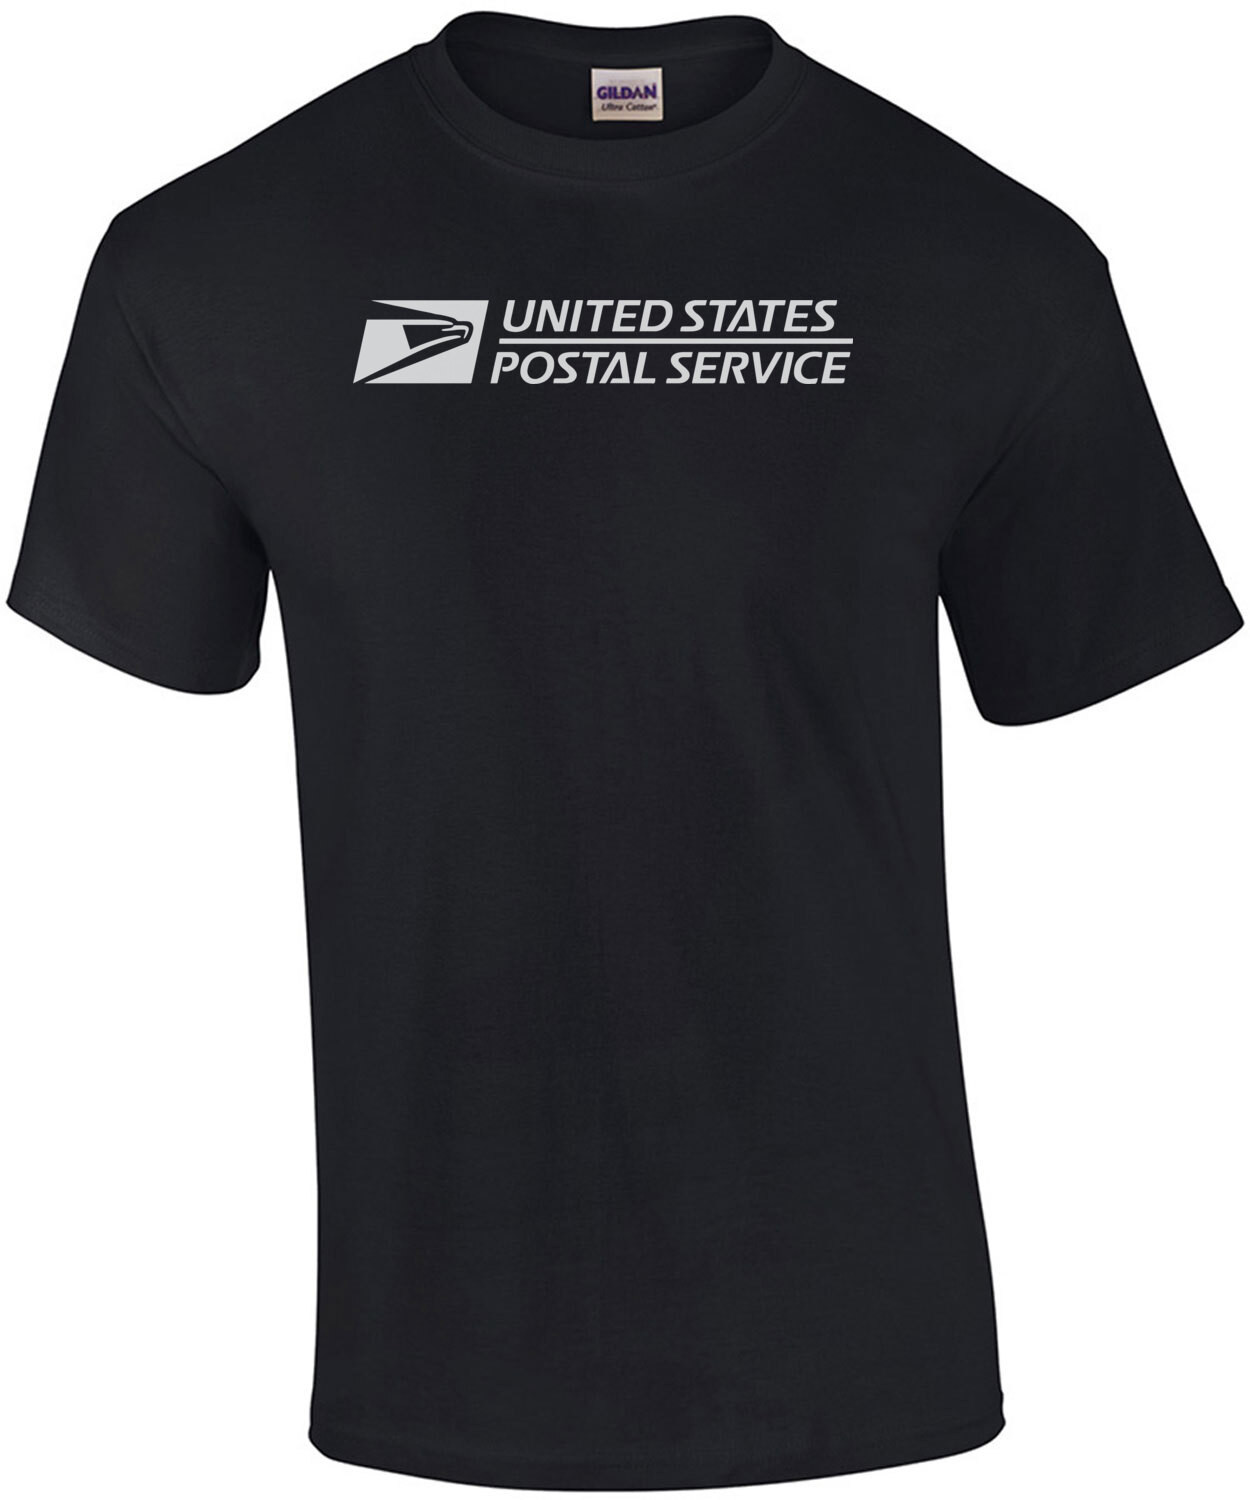 United States Postal Service - Post Office - Mailman - T-Shirt